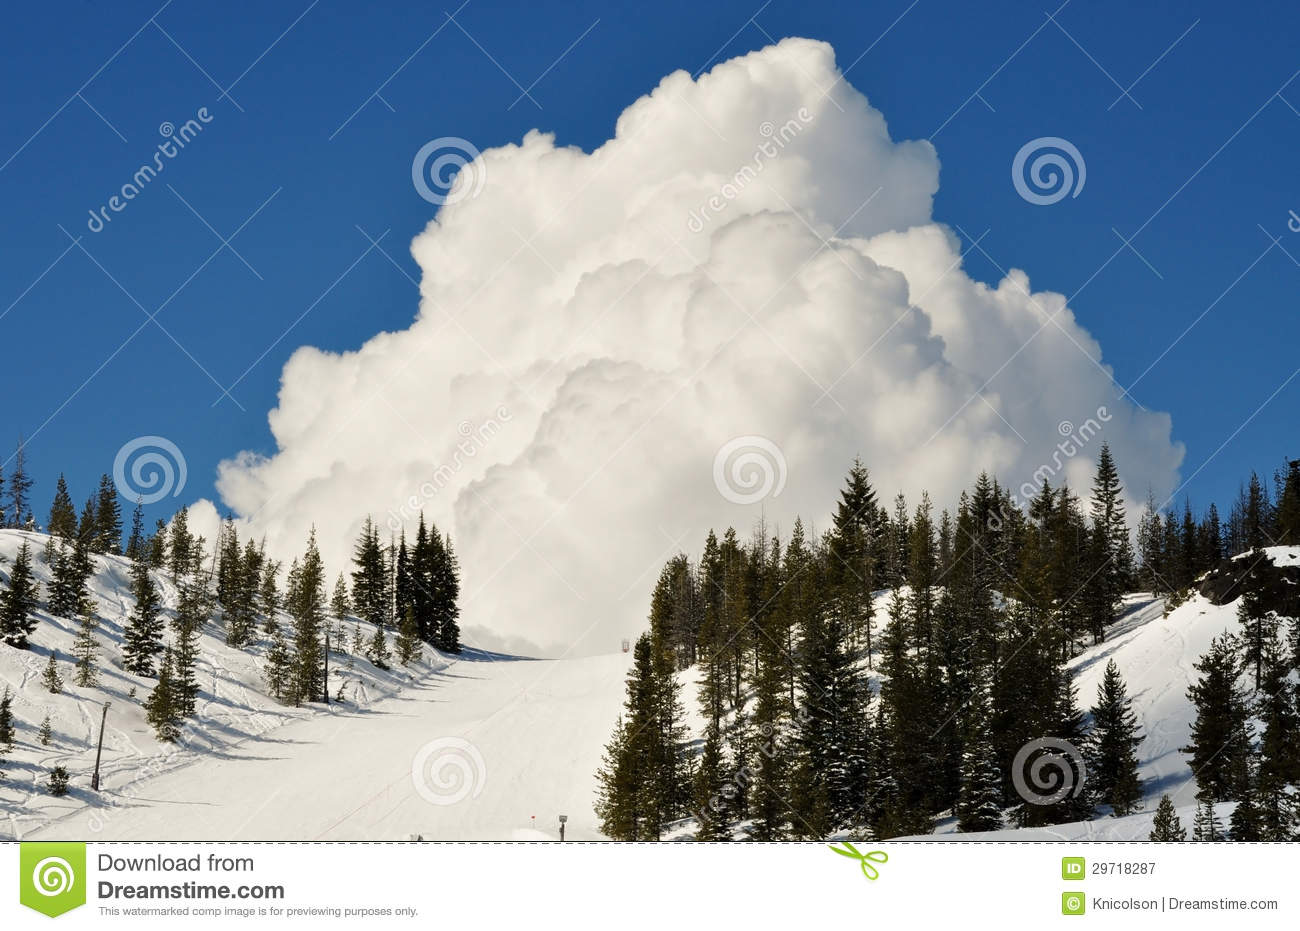 hoodoo ski resort stock image. image of background, skiing - 29718287